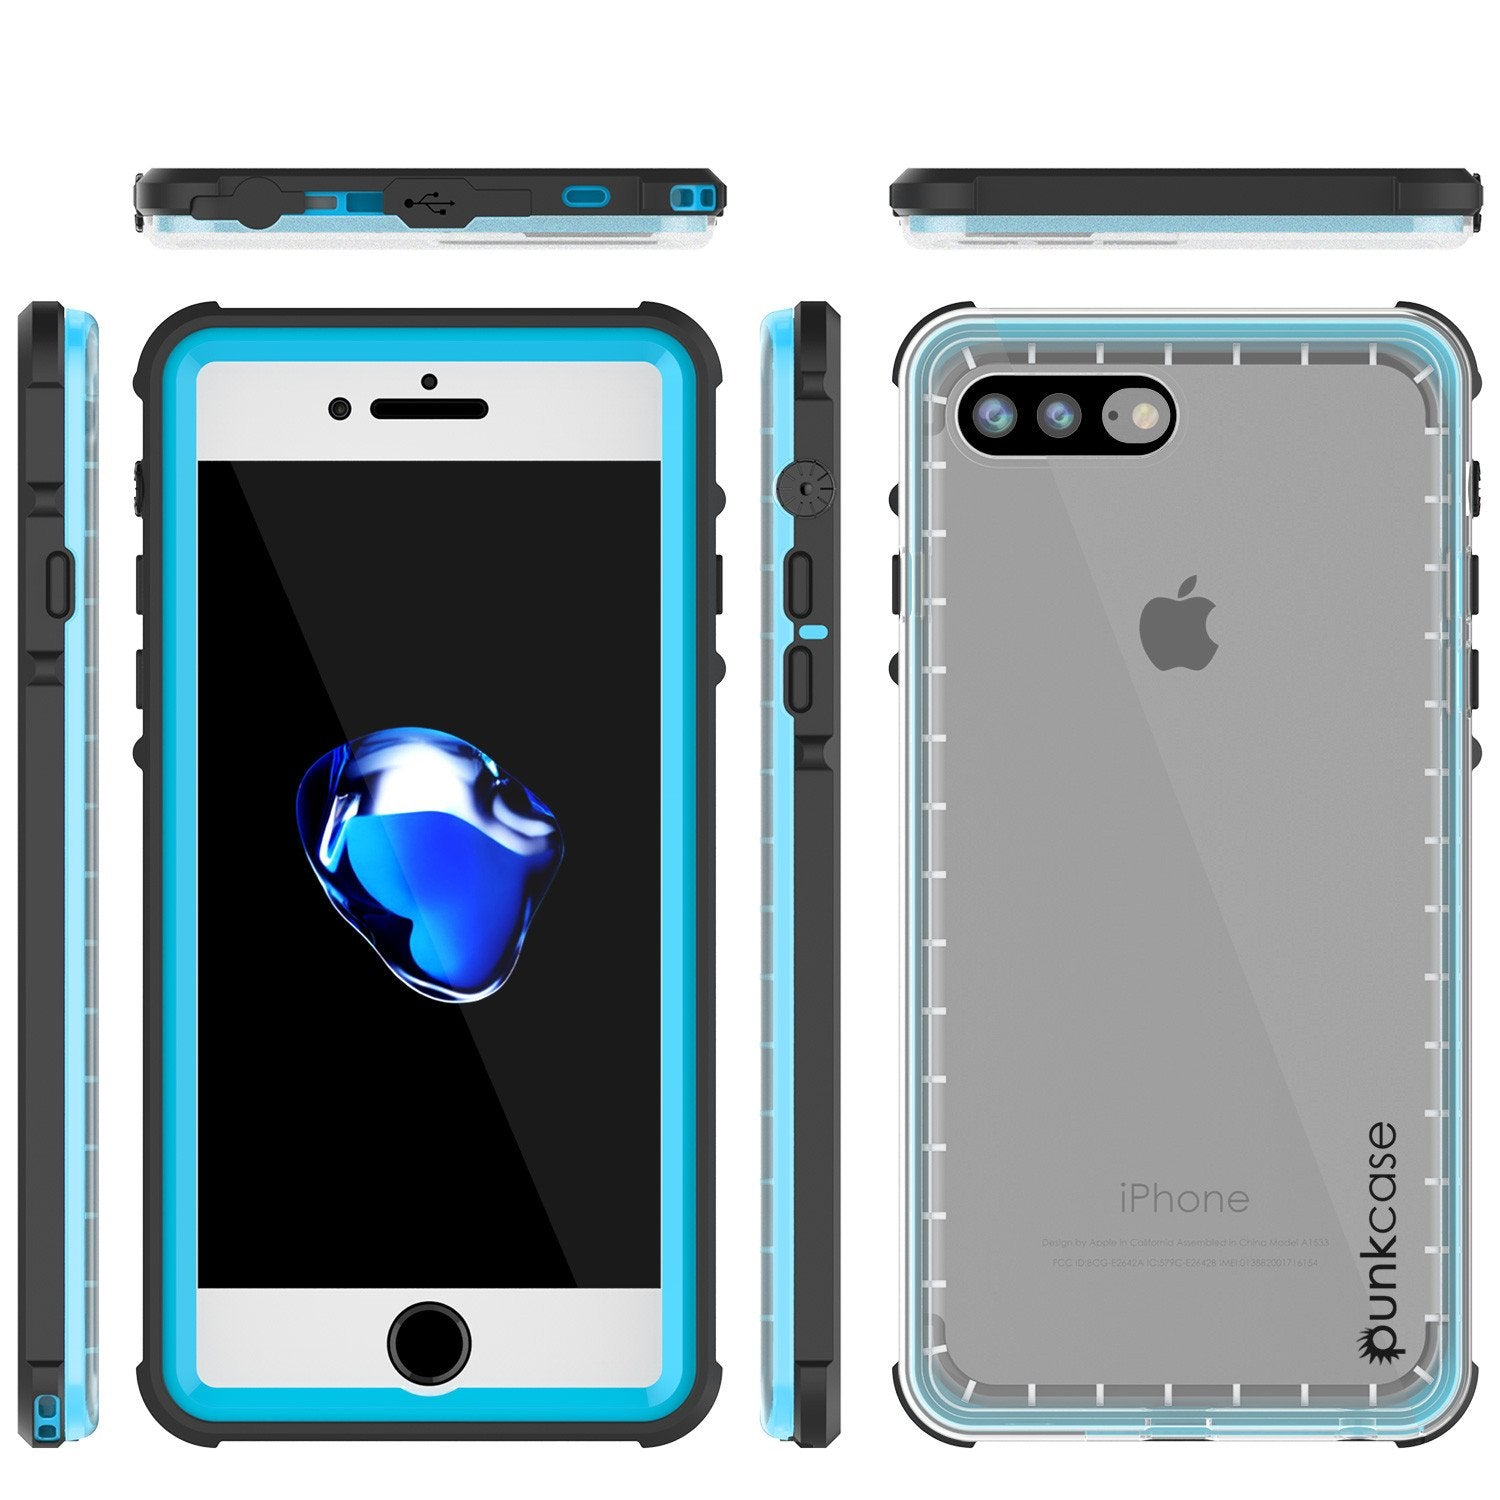 iPhone 7+ Plus Waterproof Case, PUNKcase CRYSTAL Light Blue  W/ Attached Screen Protector  | Warranty - PunkCase NZ